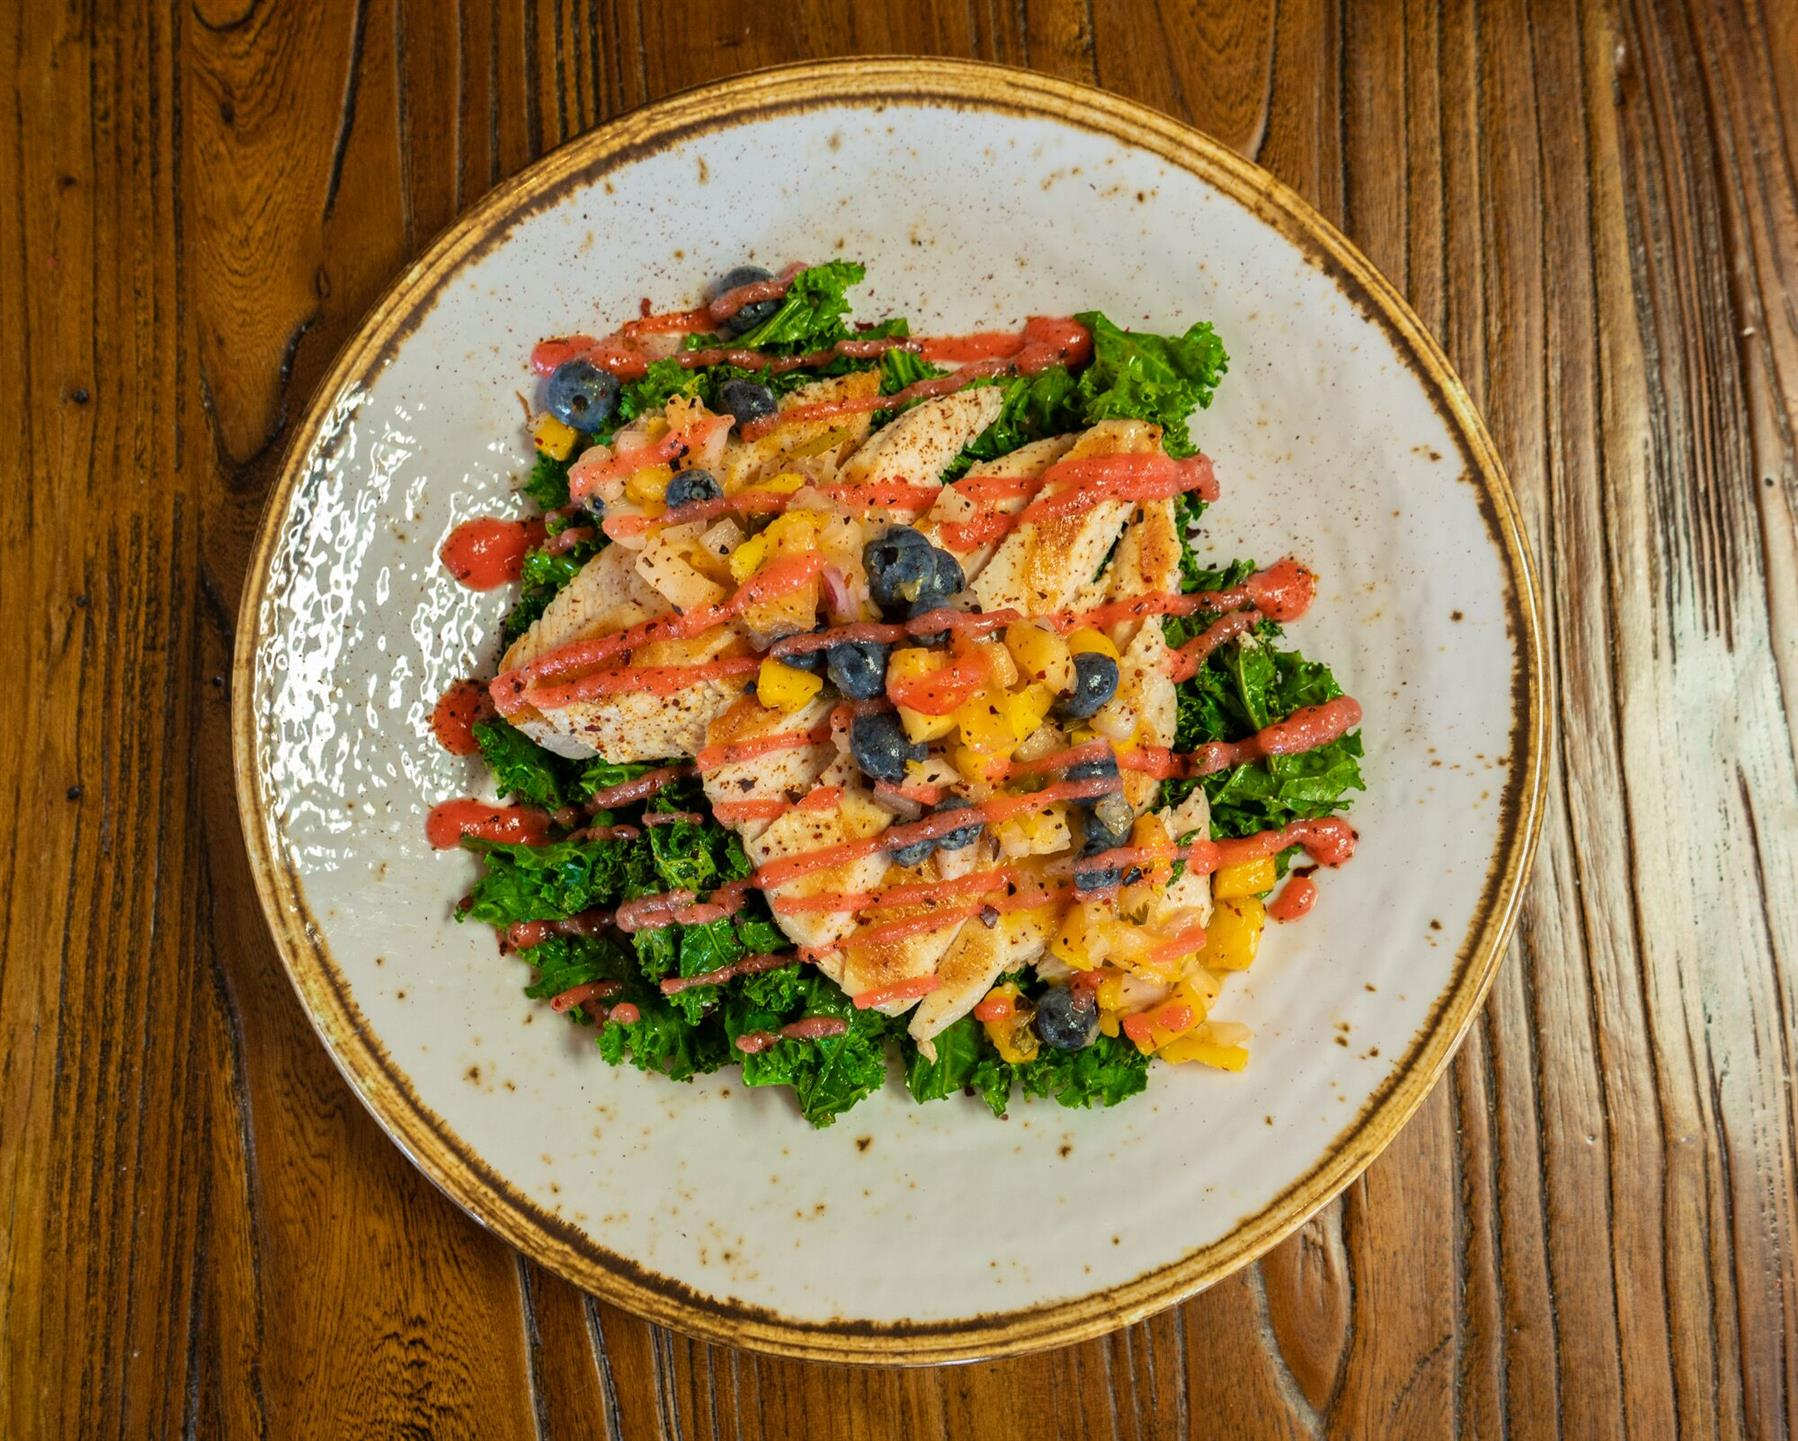 Top shot of Grilled Caribbean spiced boneless chicken topped with tropical blueberry salsa & wilted kale drizzled with habanero-ginger sauce.